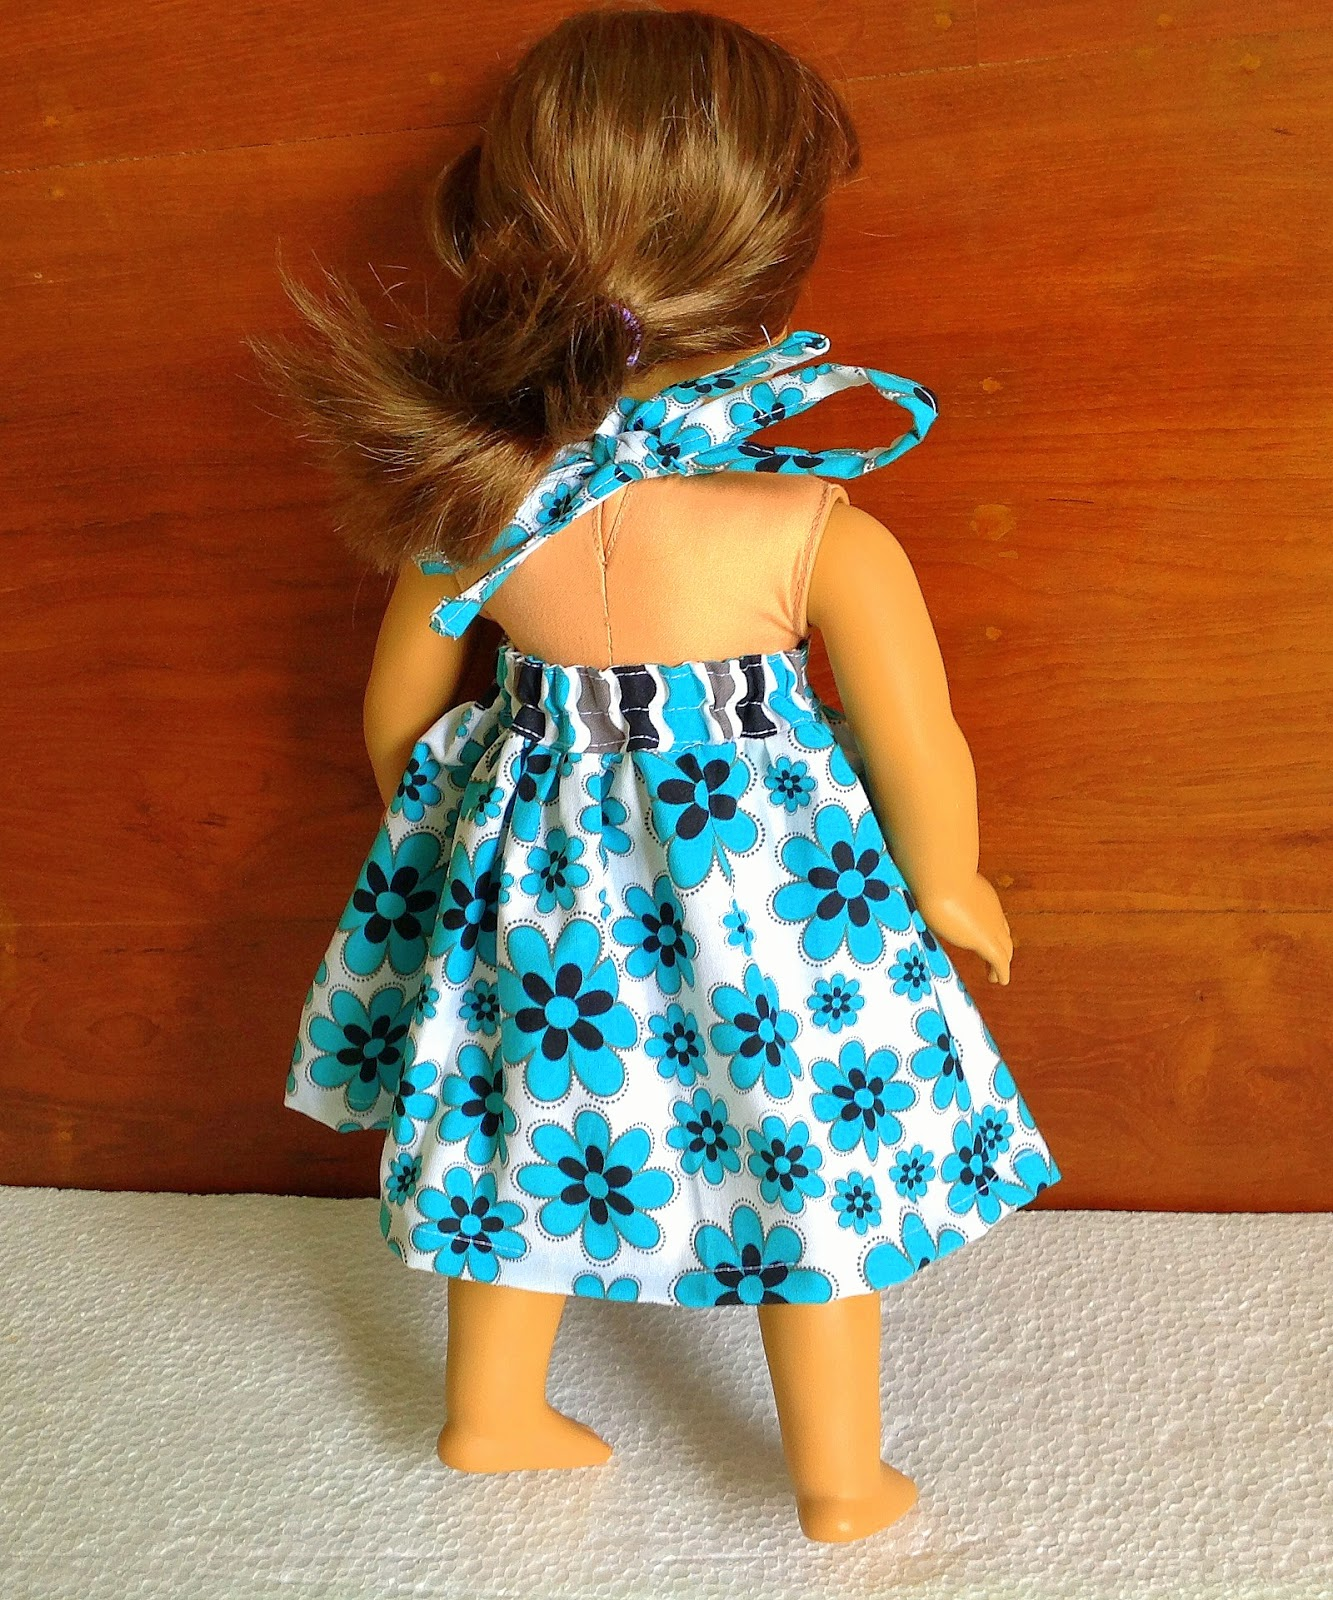 Sewing Patterns For Girls Dresses And Skirts American Doll Dress Pattern 18-inch Doll Dress ...